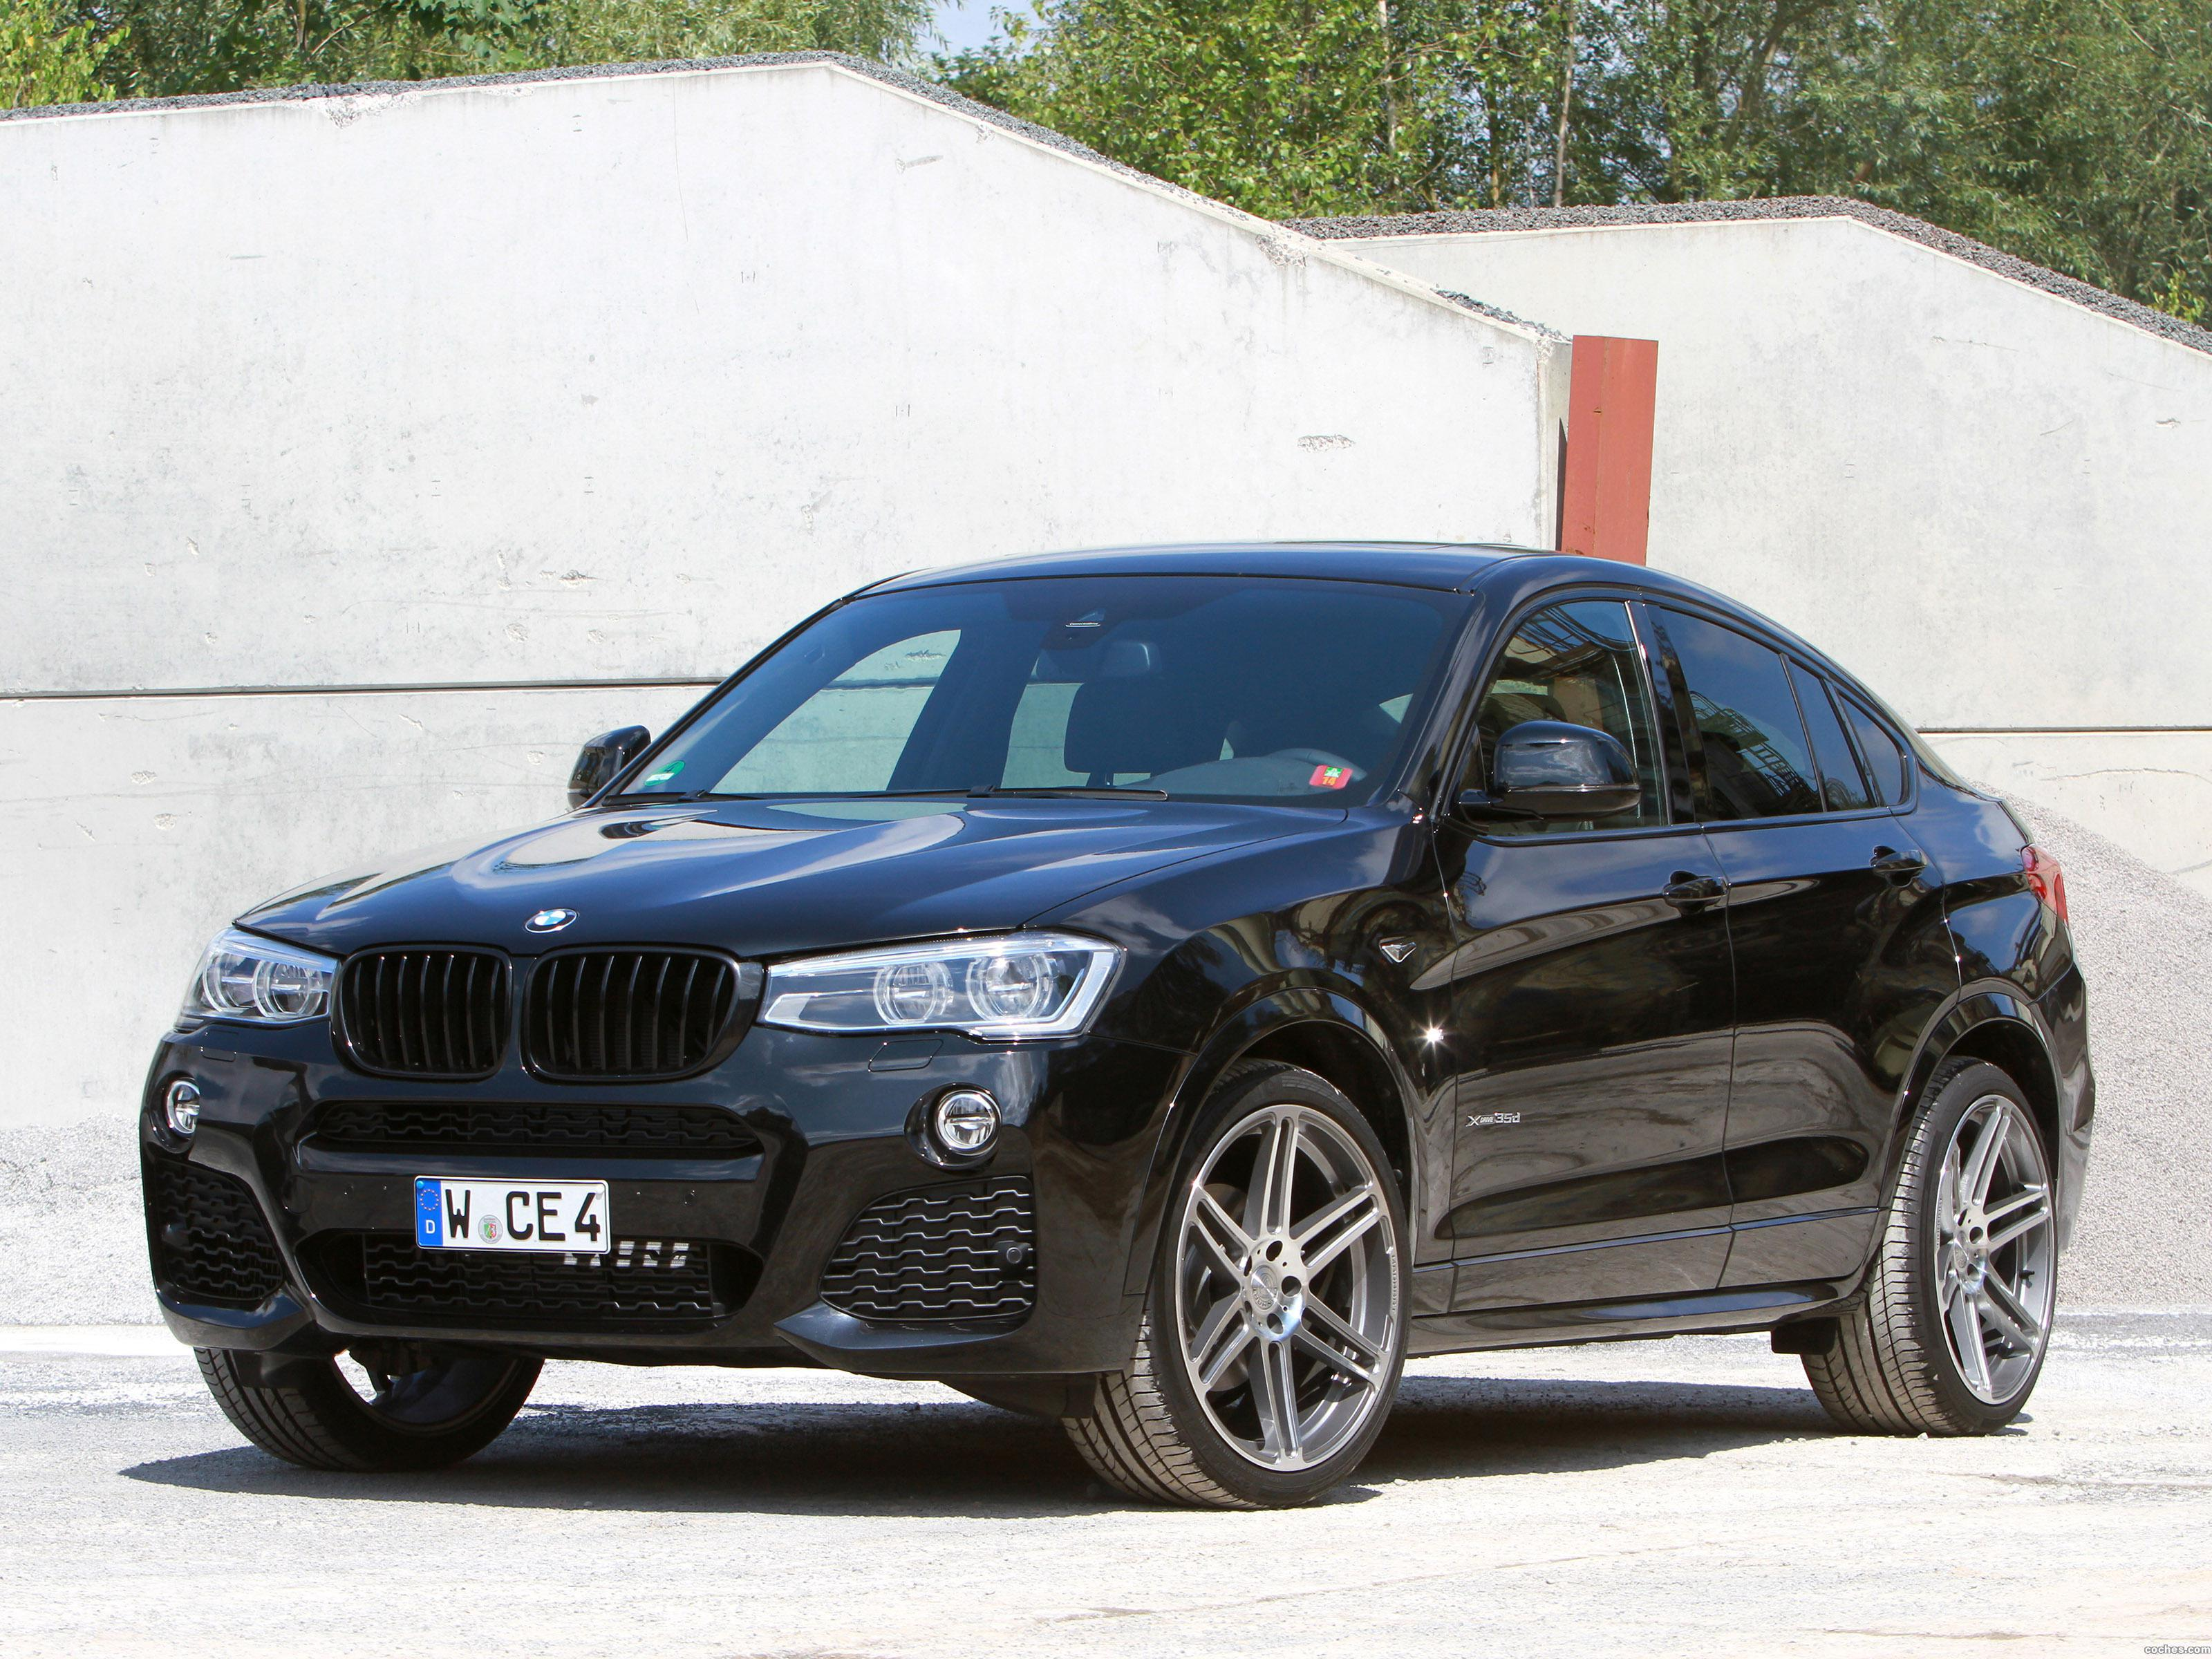 manhart_bmw-x4-xdrive35d-m-sports-package-f26-2014_r6.jpg